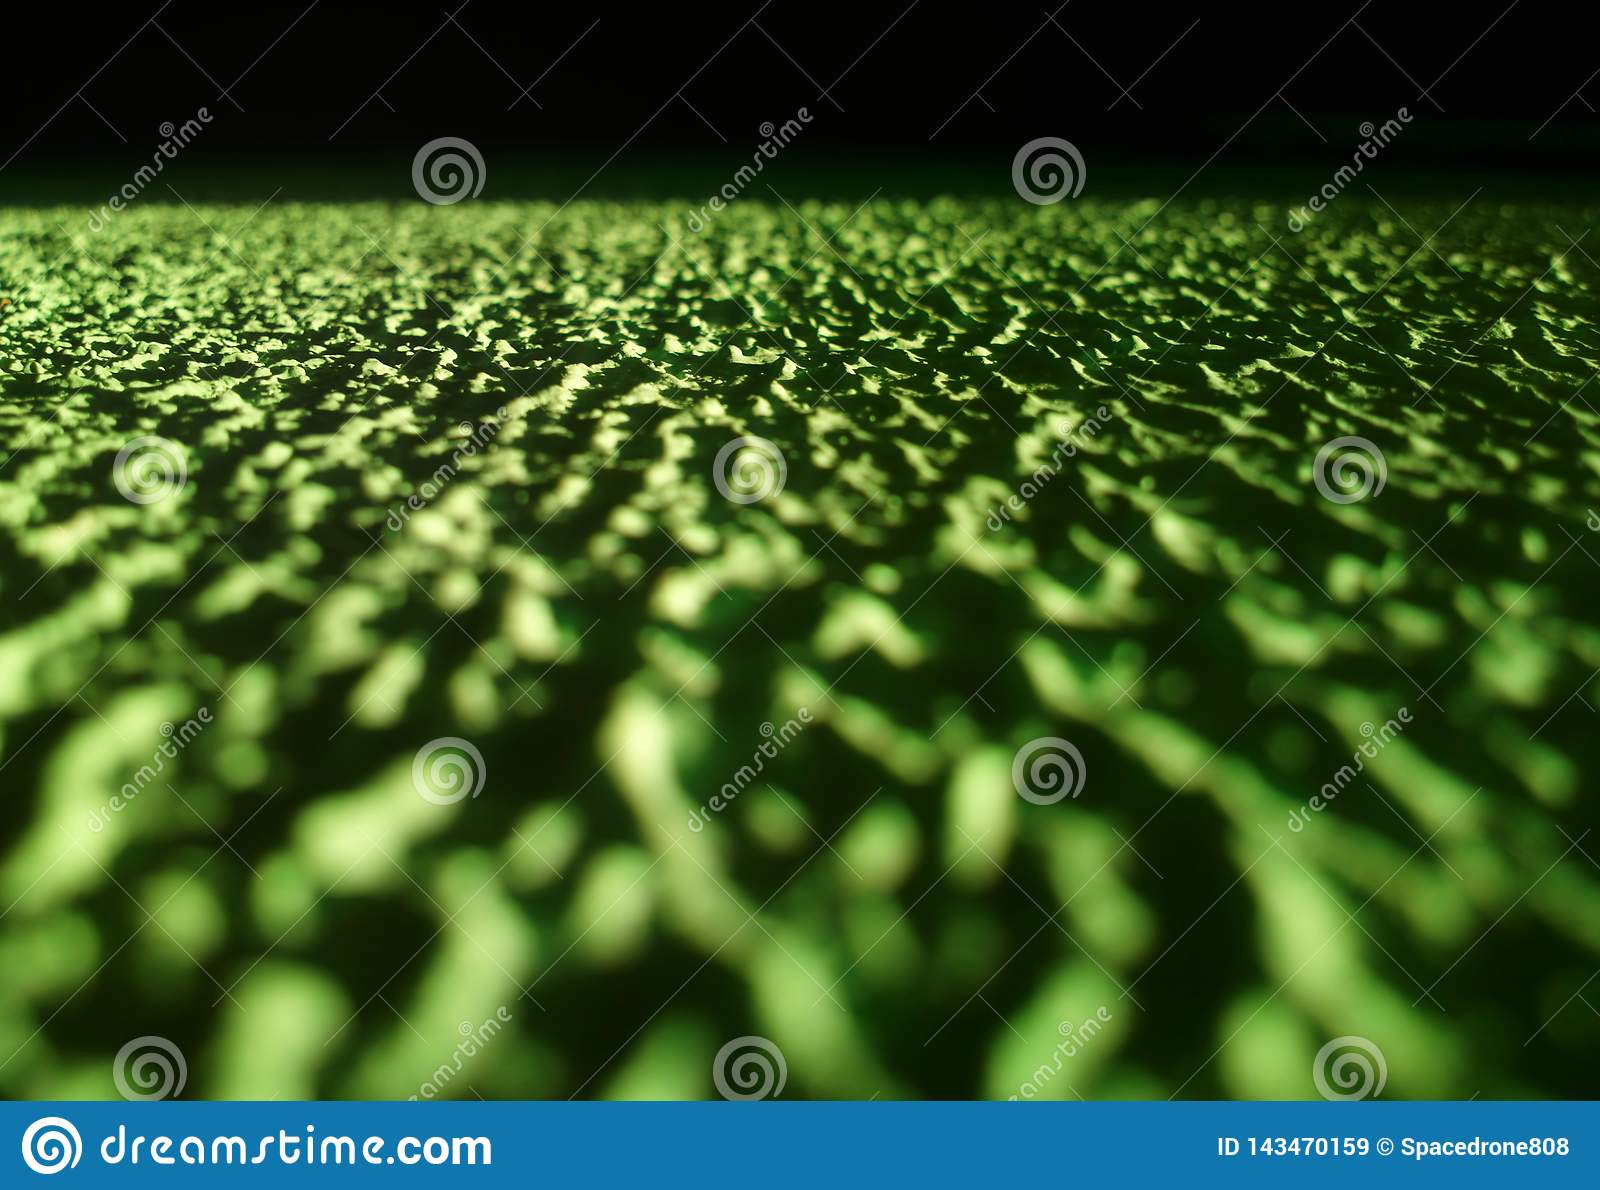 Low angled green concrete texture background hd